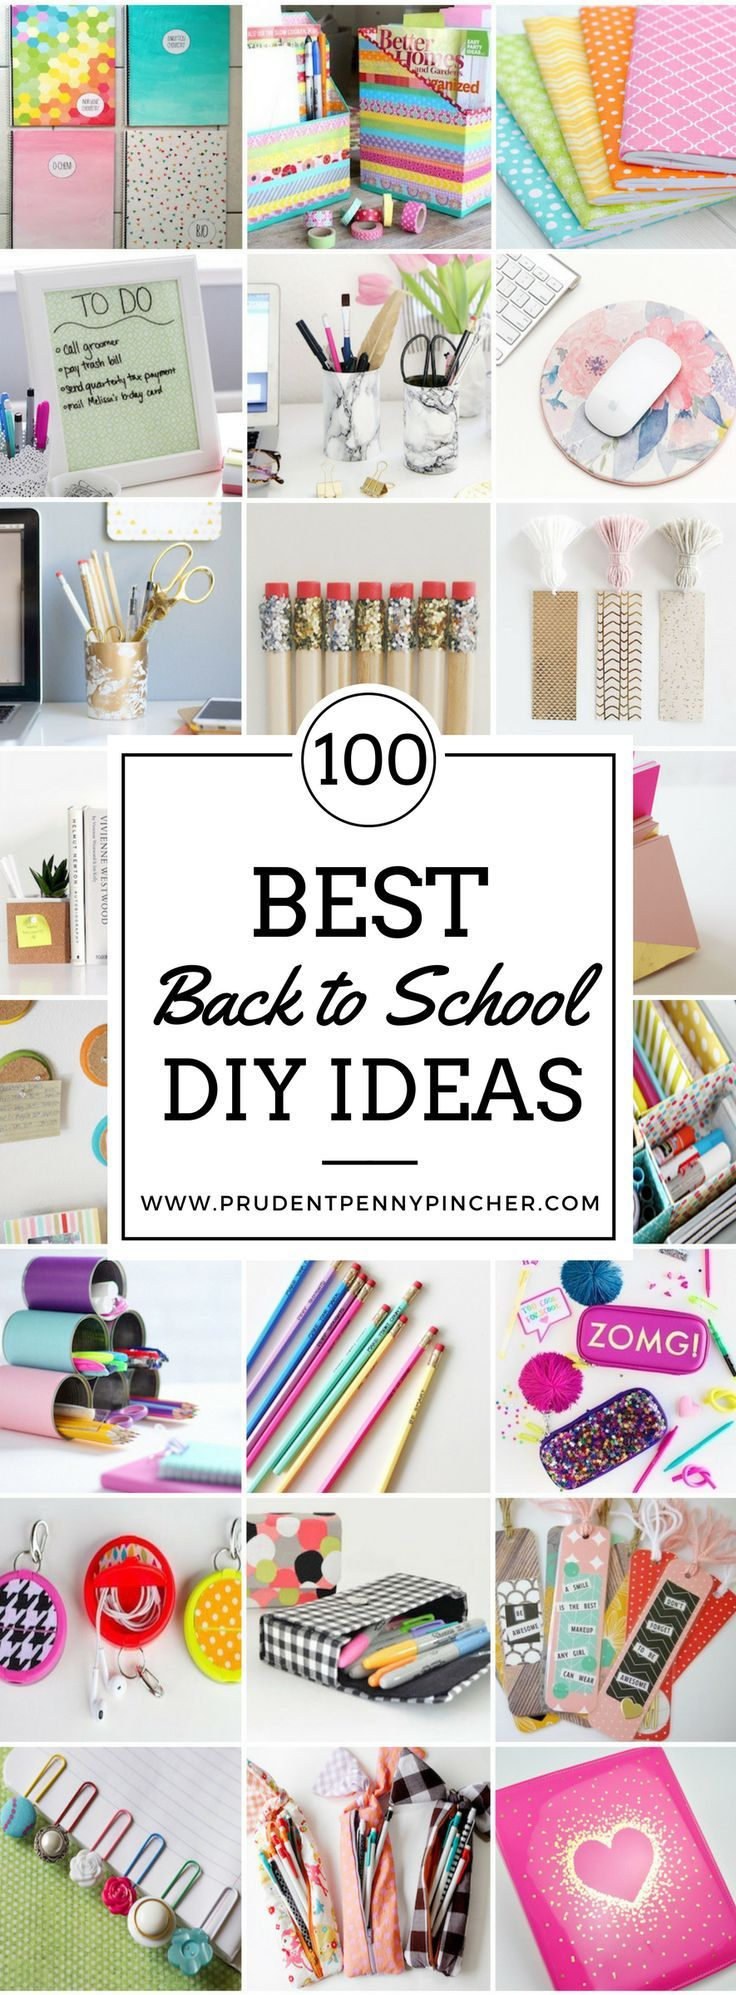 50 Best Back To Front Before After Remodelling Projects: 100 Best Back To School DIY Ideas